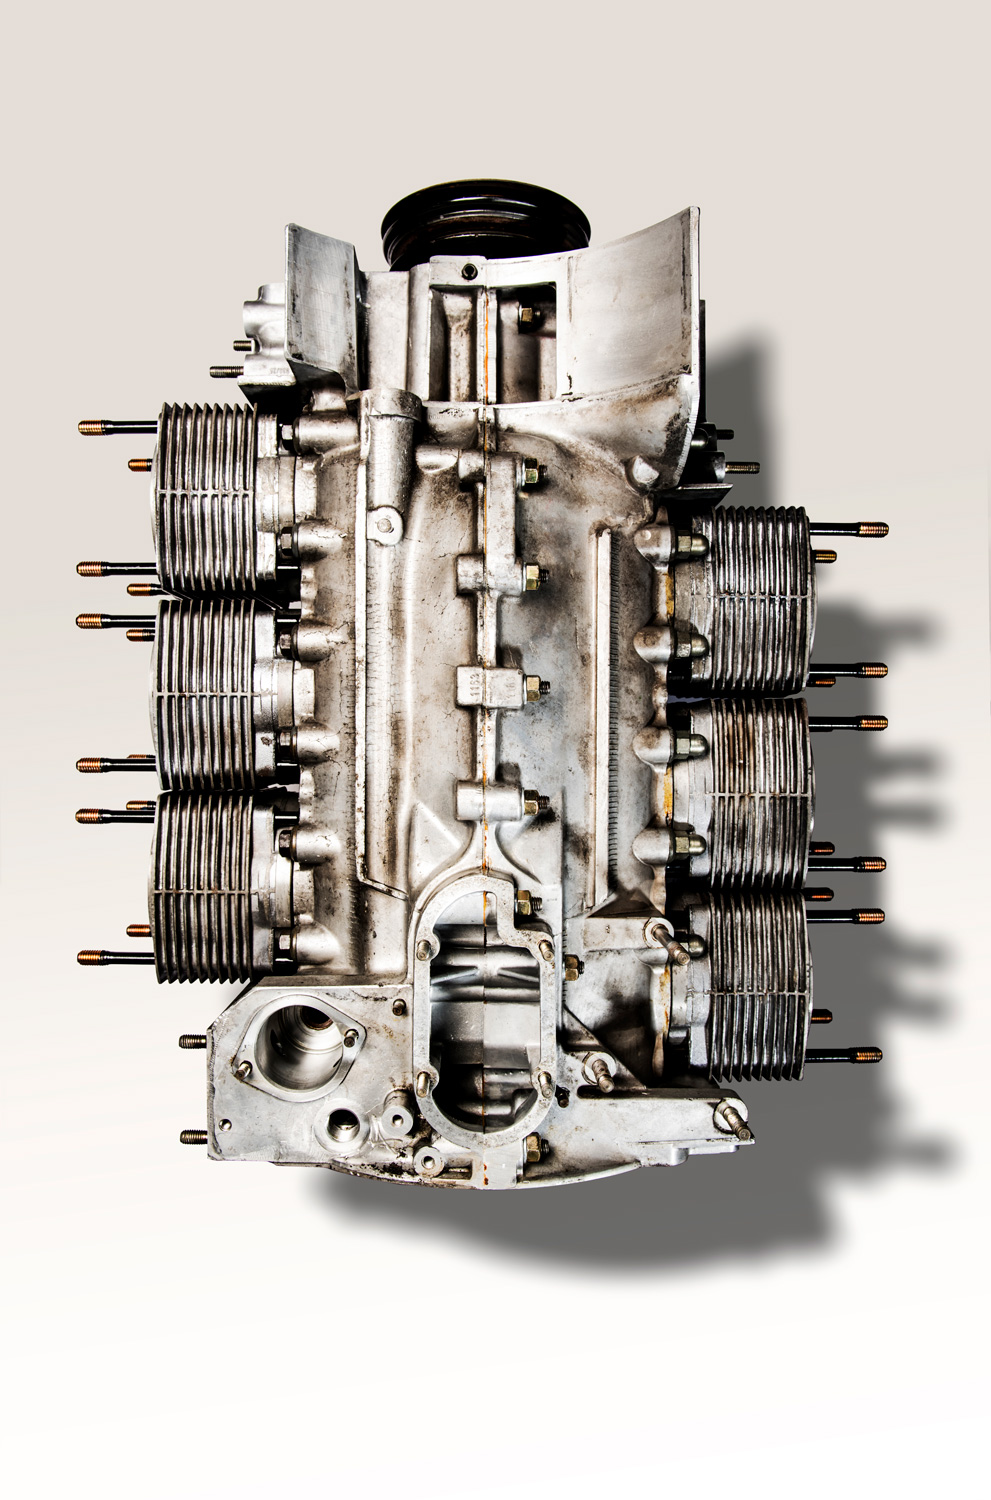 The flat-six crankcase splits vertically down the middle, and each cylinder is a separate unit bolted to the main structure.